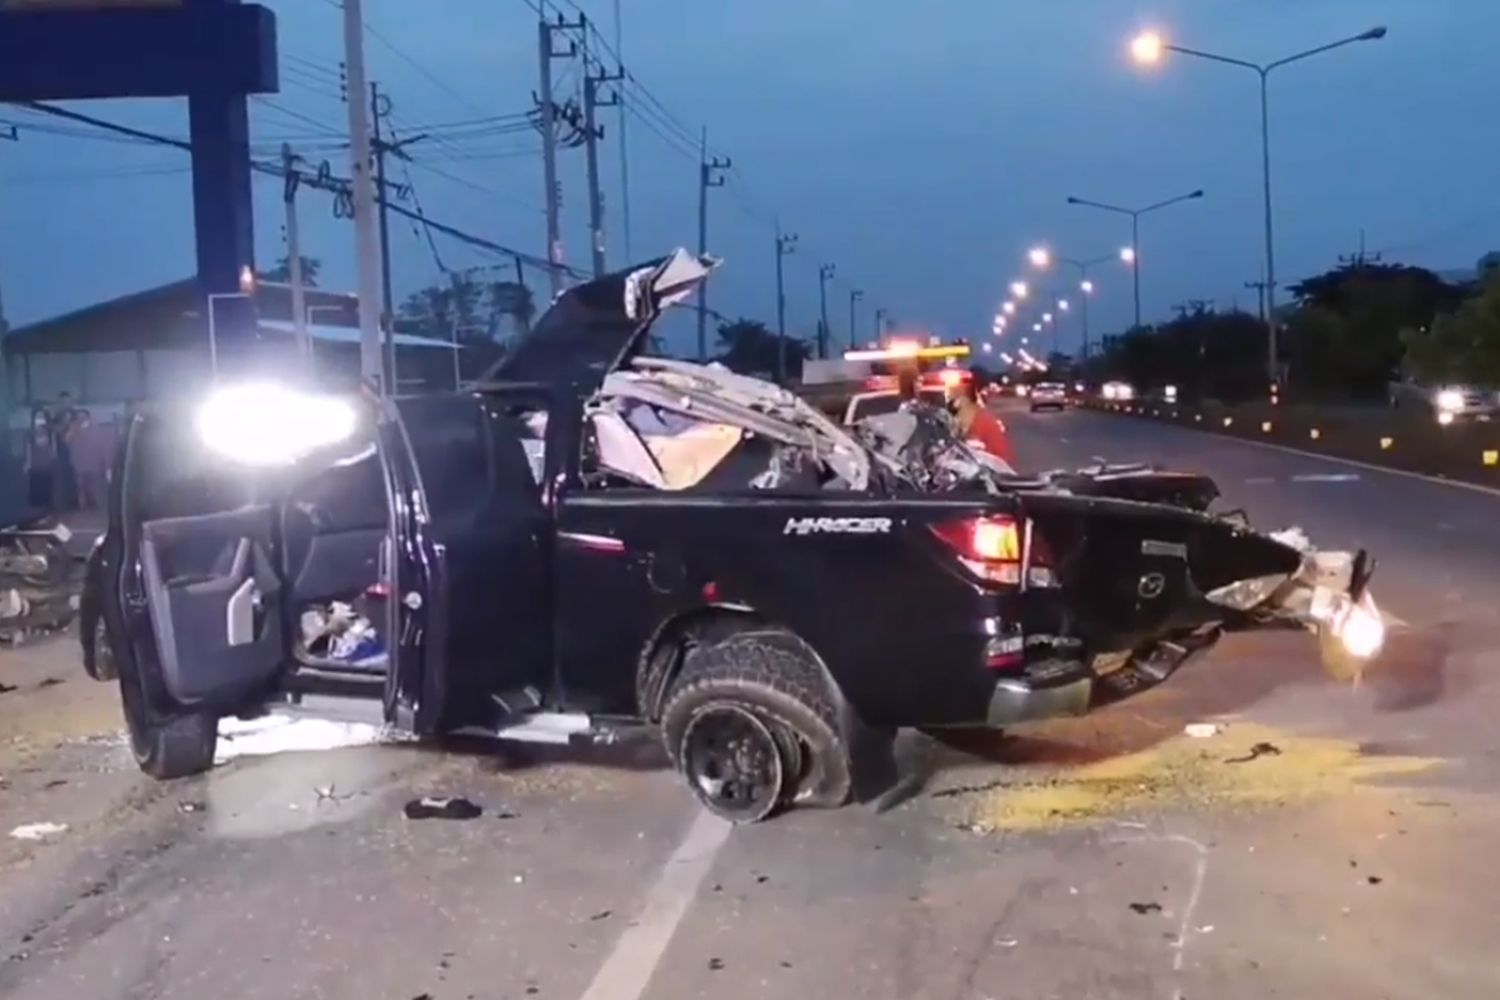 The wreckage of a pickup truck hit by a six-wheel lorry from the opposite lane on Warin-Katharalak Road in Warin Chamrap, Ubon Ratchathani, on Friday evening. A nine-year-old girl and her father, 29, in the pickup truck were killed while the mother, also 29, was sent to a hospital. The driver of the lorry, who was slightly hurt, was drunk. (Image from a video supplied by Dusit Singkhiri)